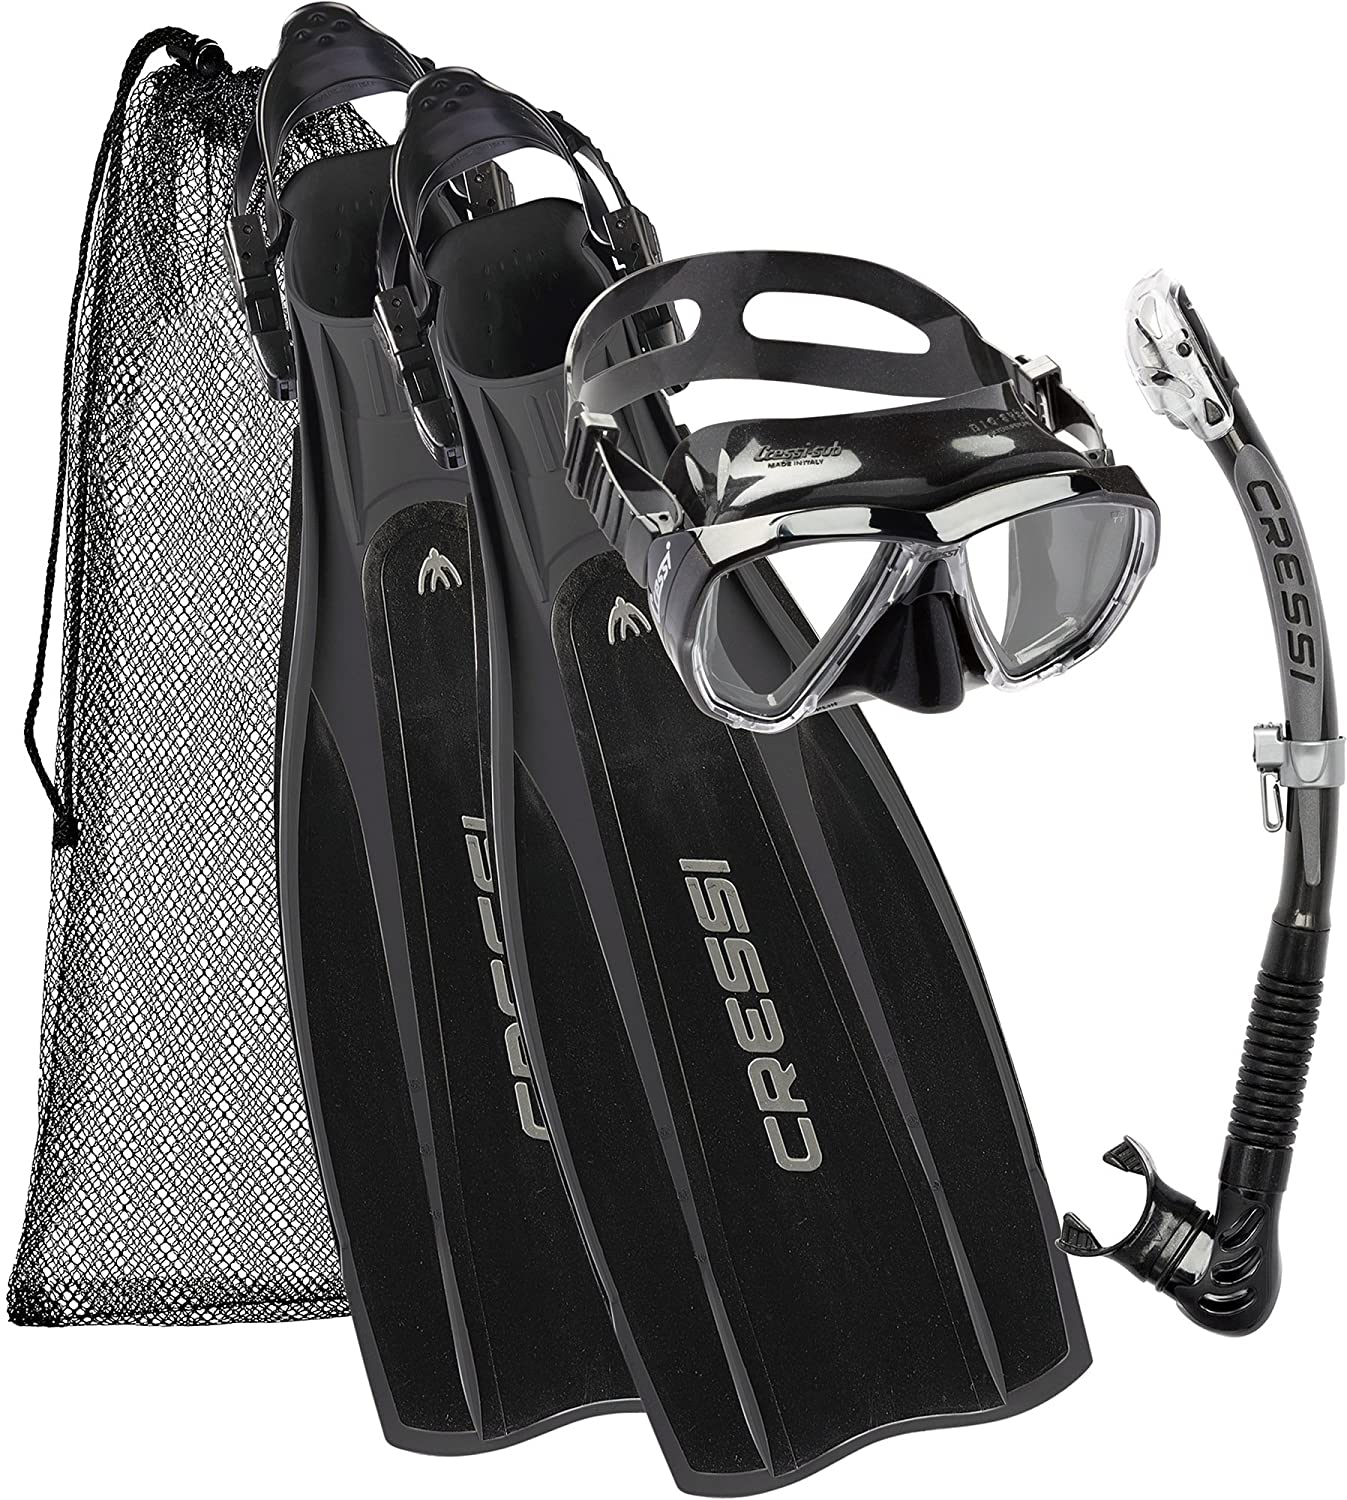 Cressi Kit Prolight per Immersioni/Snorkeling, Pinne Regolabili + Maschera Big Eyes & Snorkel Alpha Ultra Dry